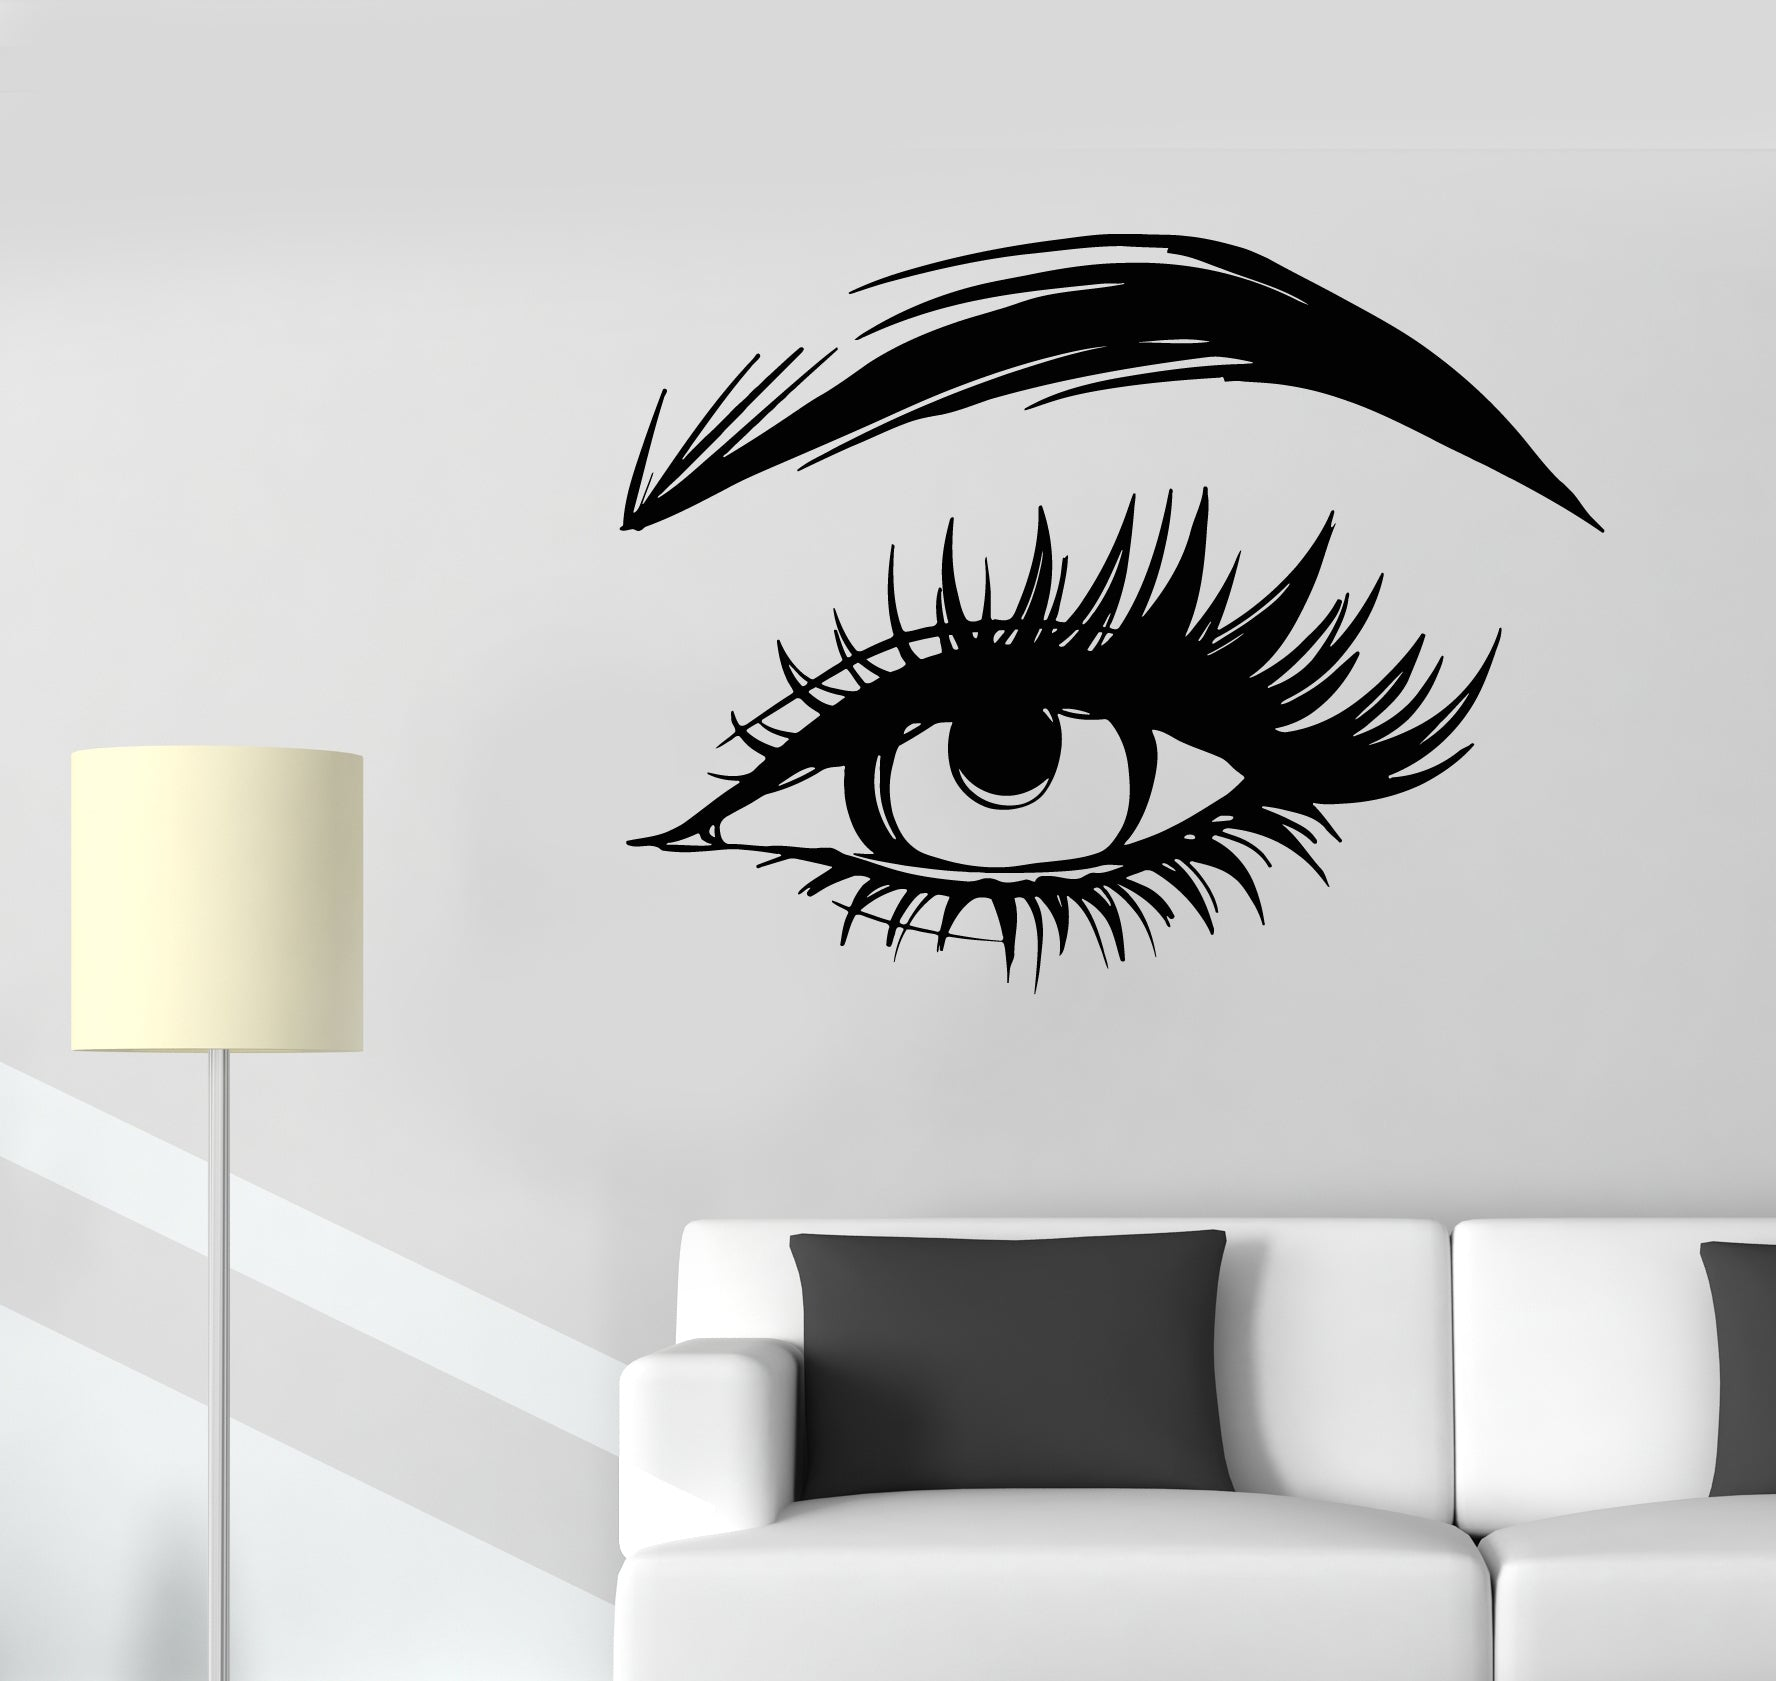 Eyelash Extension Wall Sticker Eyelashes Quote Wall Vinyl Decal Beauty Salon Decor Eye Make Up Removable Window Stickers Ay1122 Wall Stickers Aliexpress